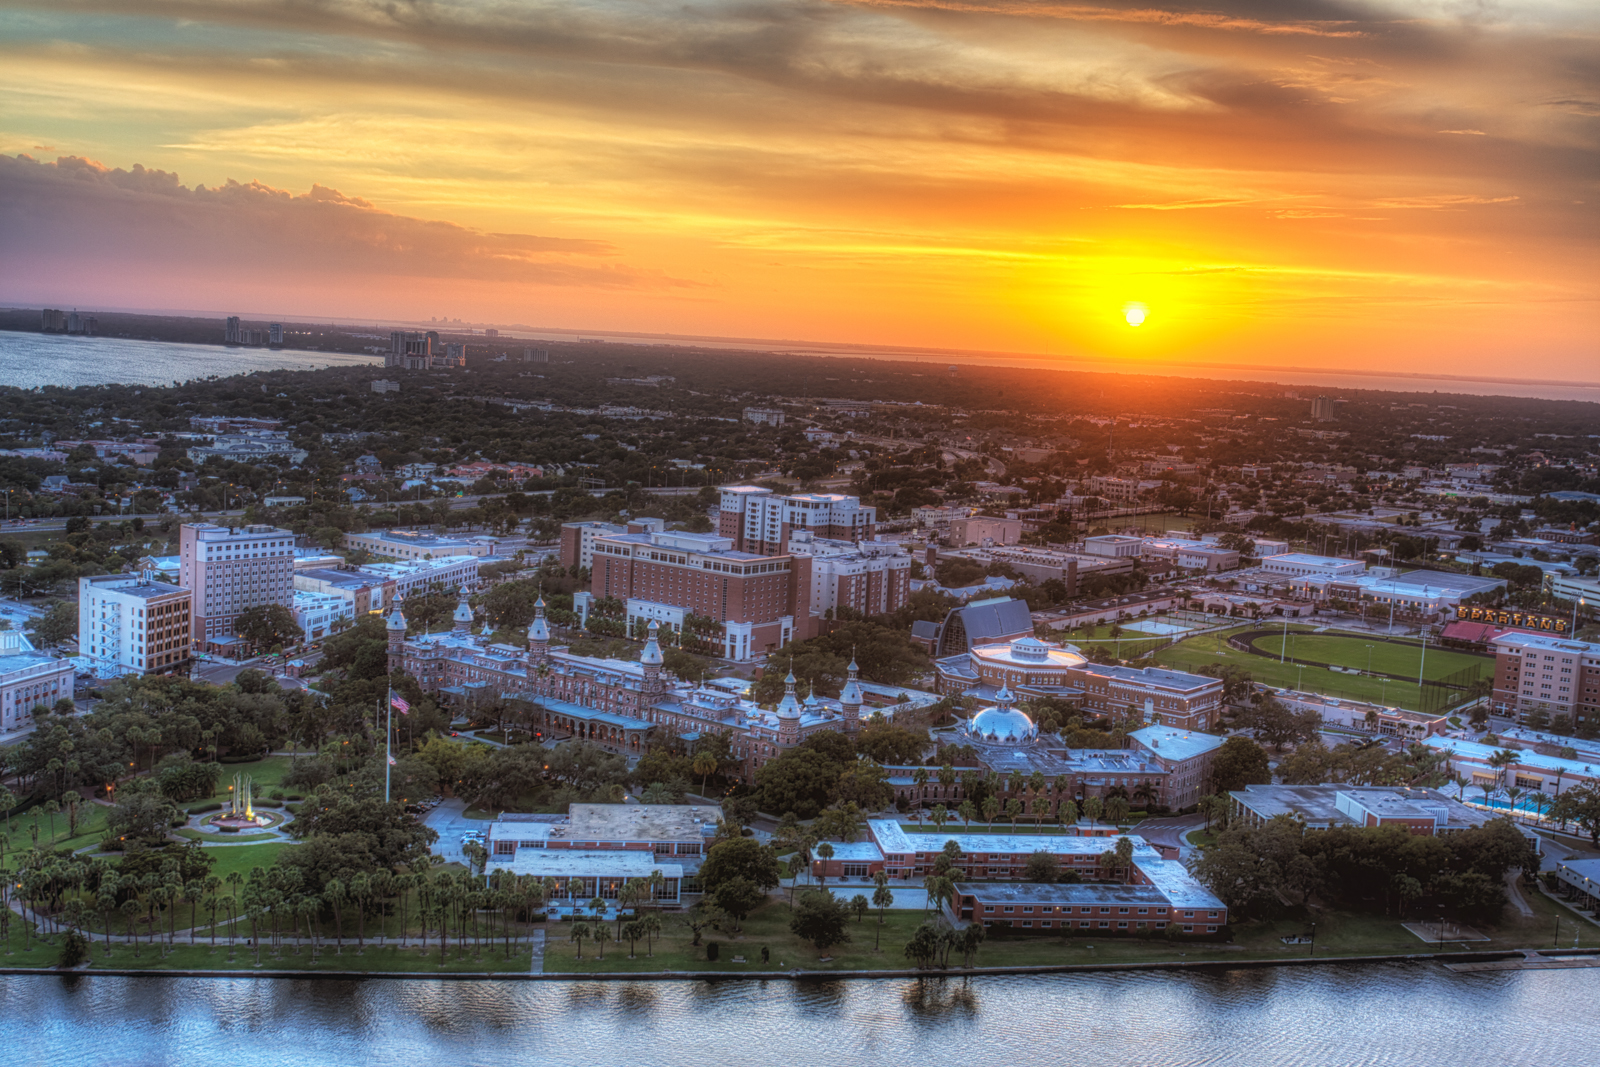 University of Tampa Sunset